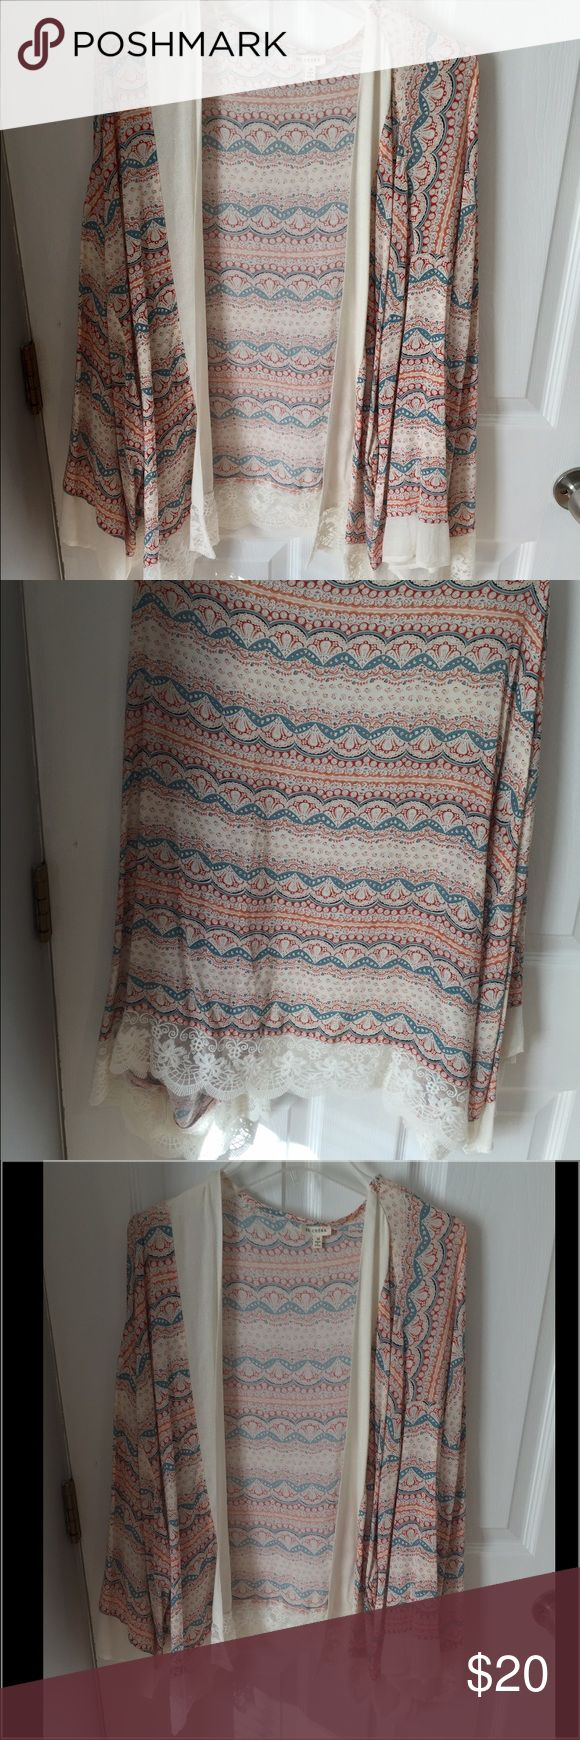 Chiffon cardigan Multicolor chiffon cardigan.  adds color to you outfit. Very flowy and flirty. Tops